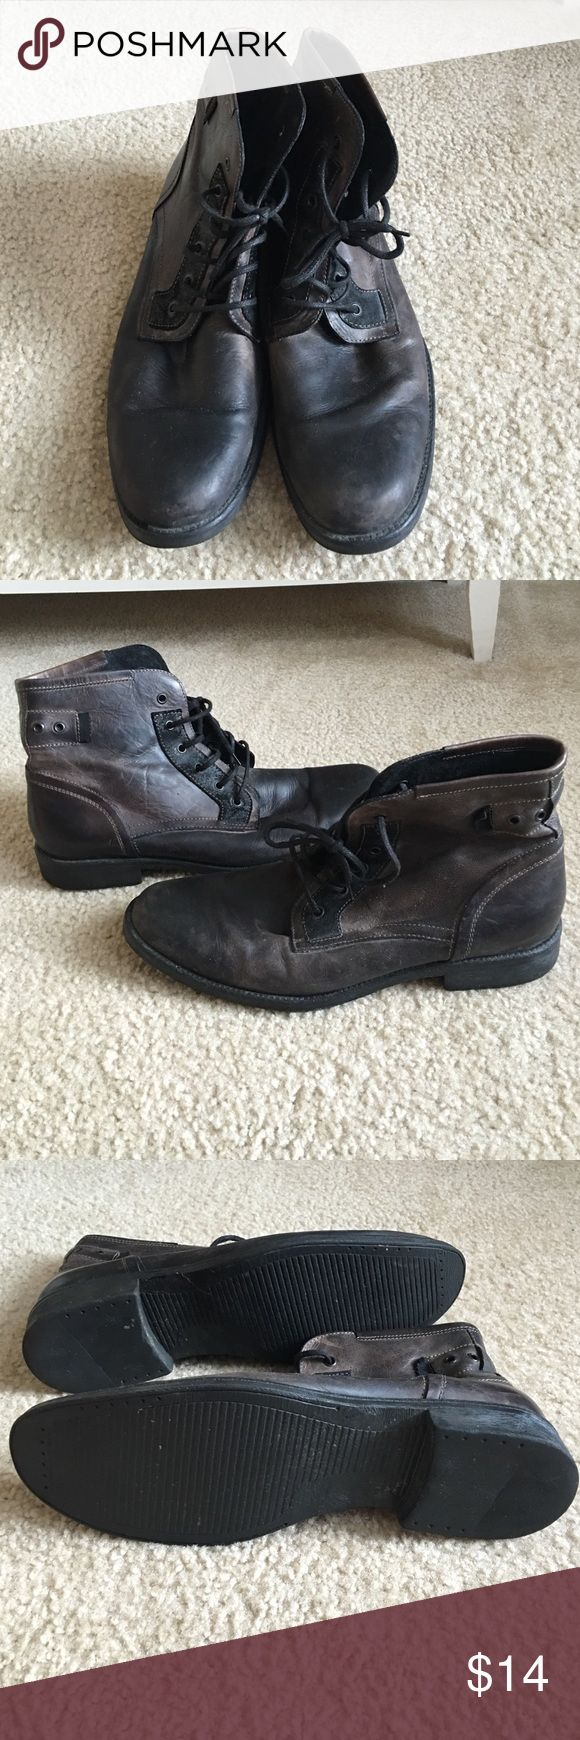 Mens Aldo Boots Used Mens Aldo Boots ALDO Shoes